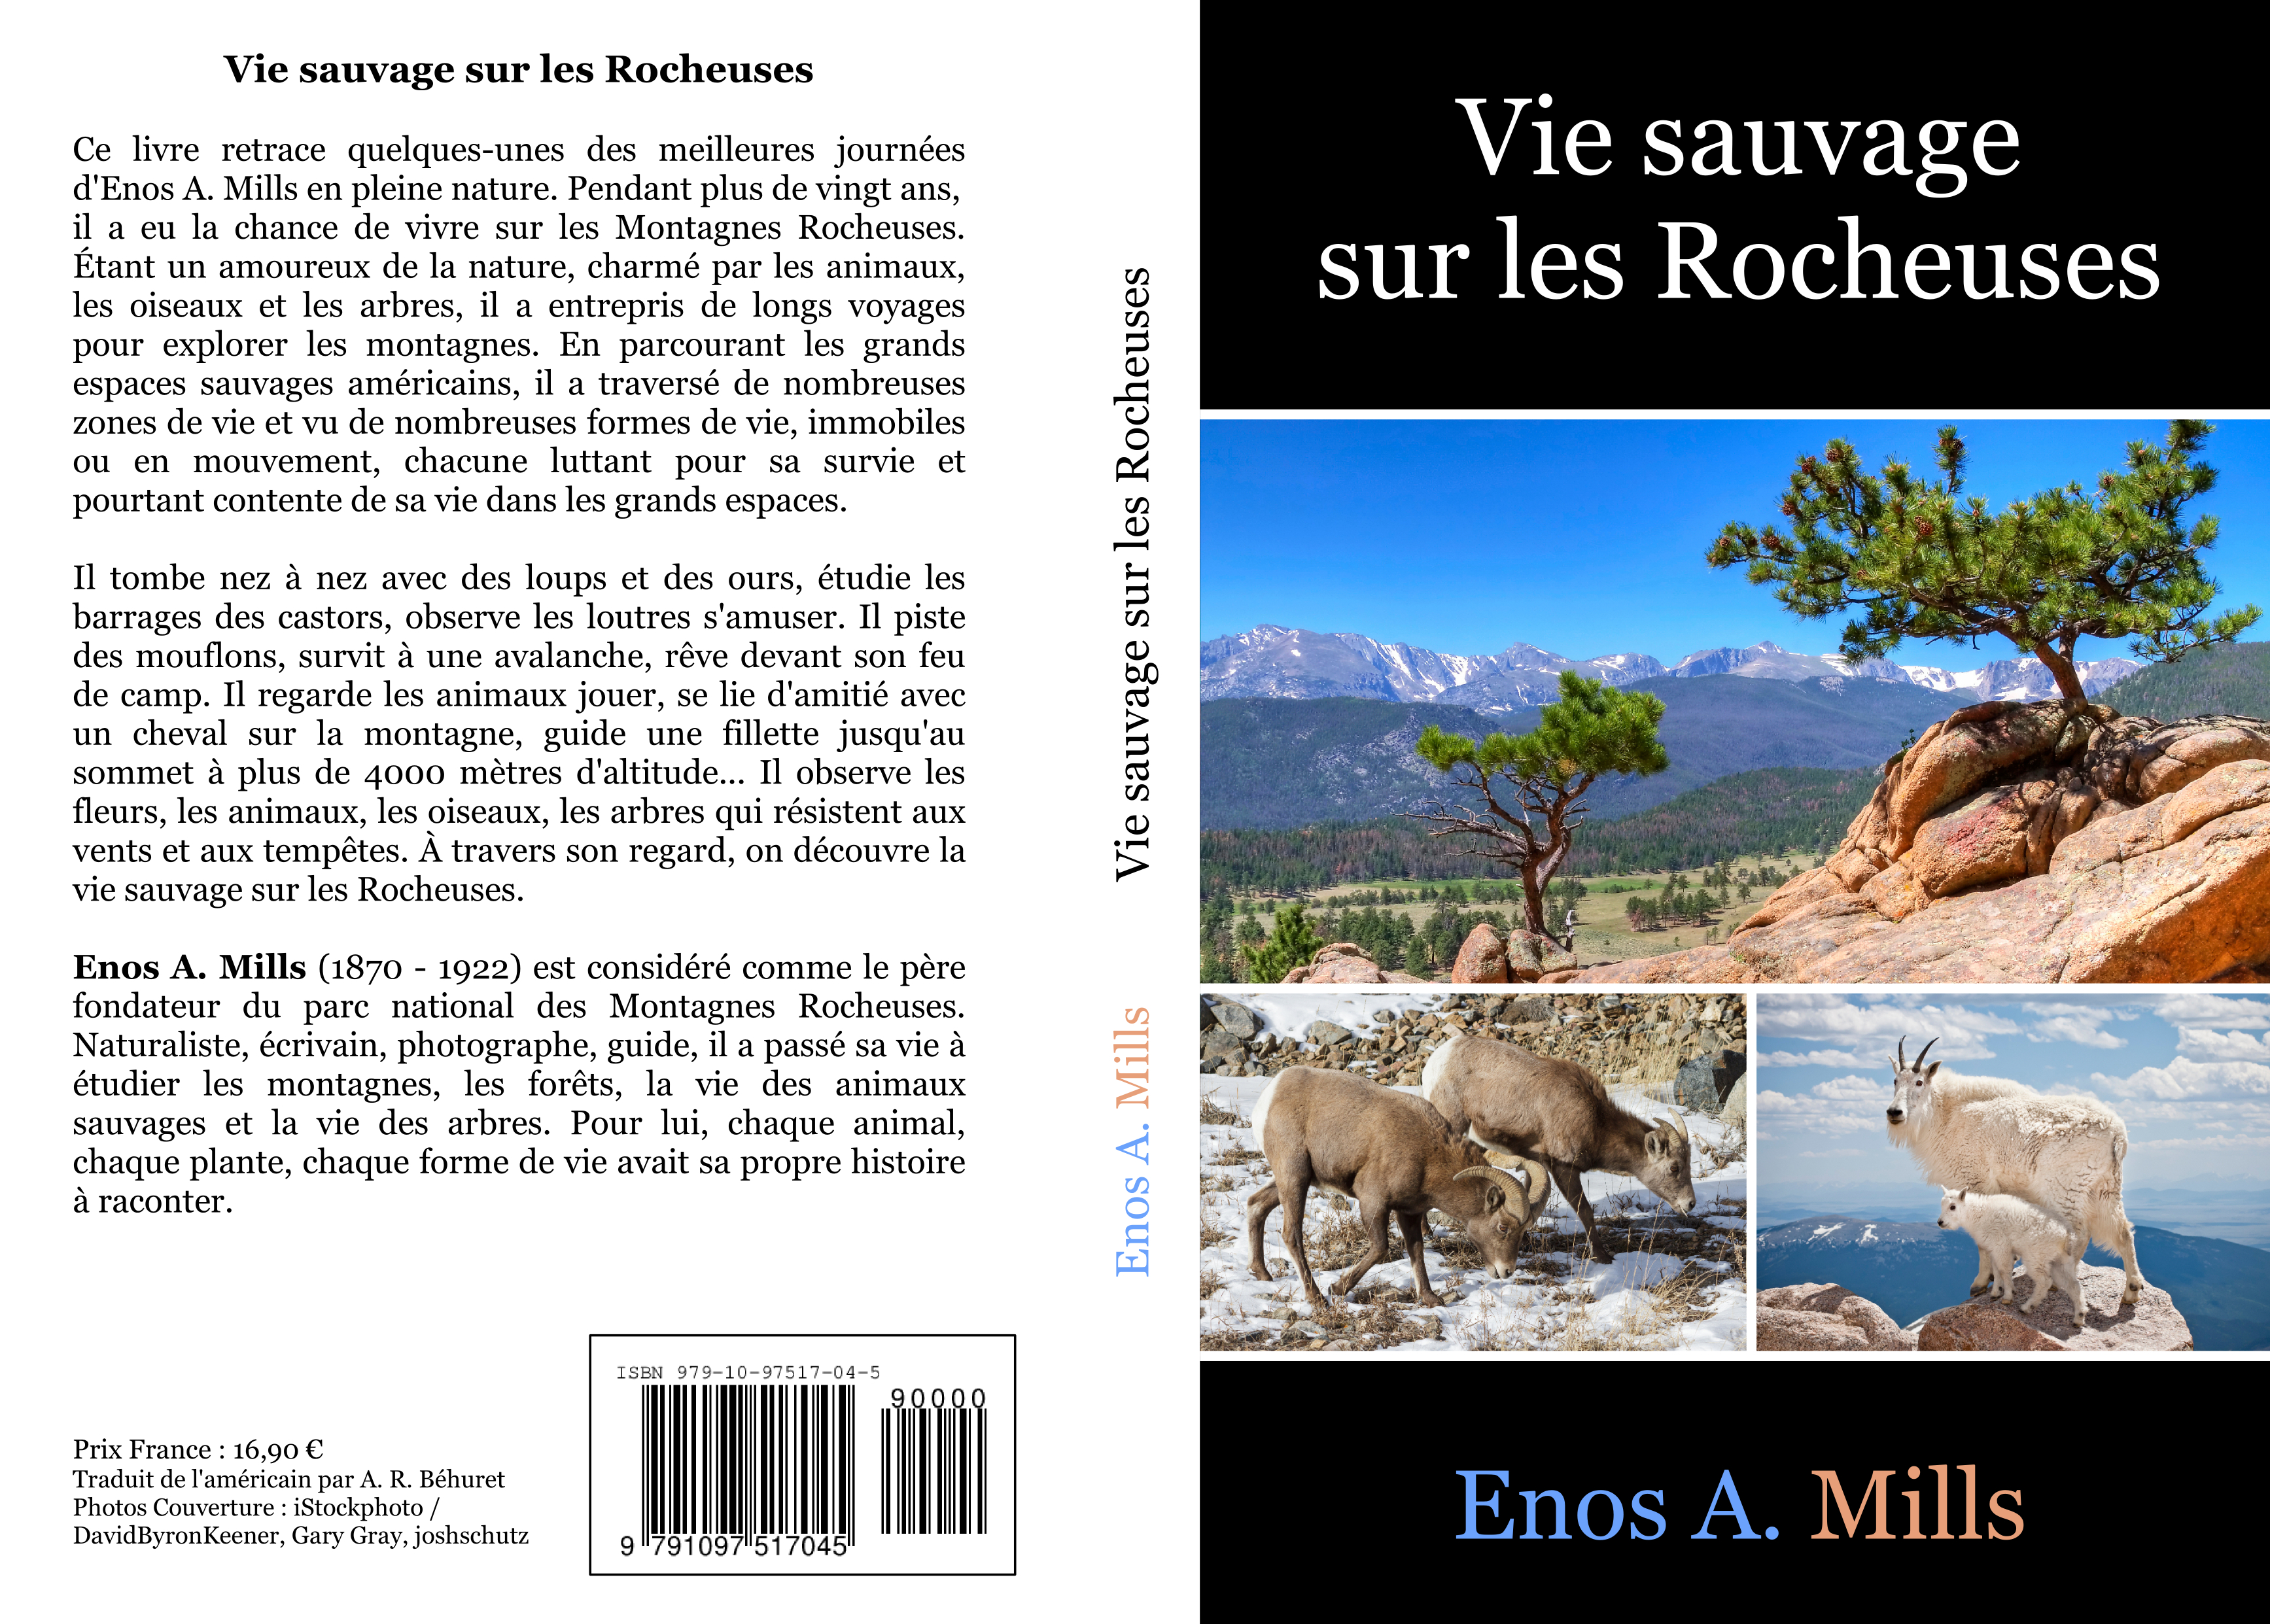 Book cover for Vie sauvage sur les Rocheuses